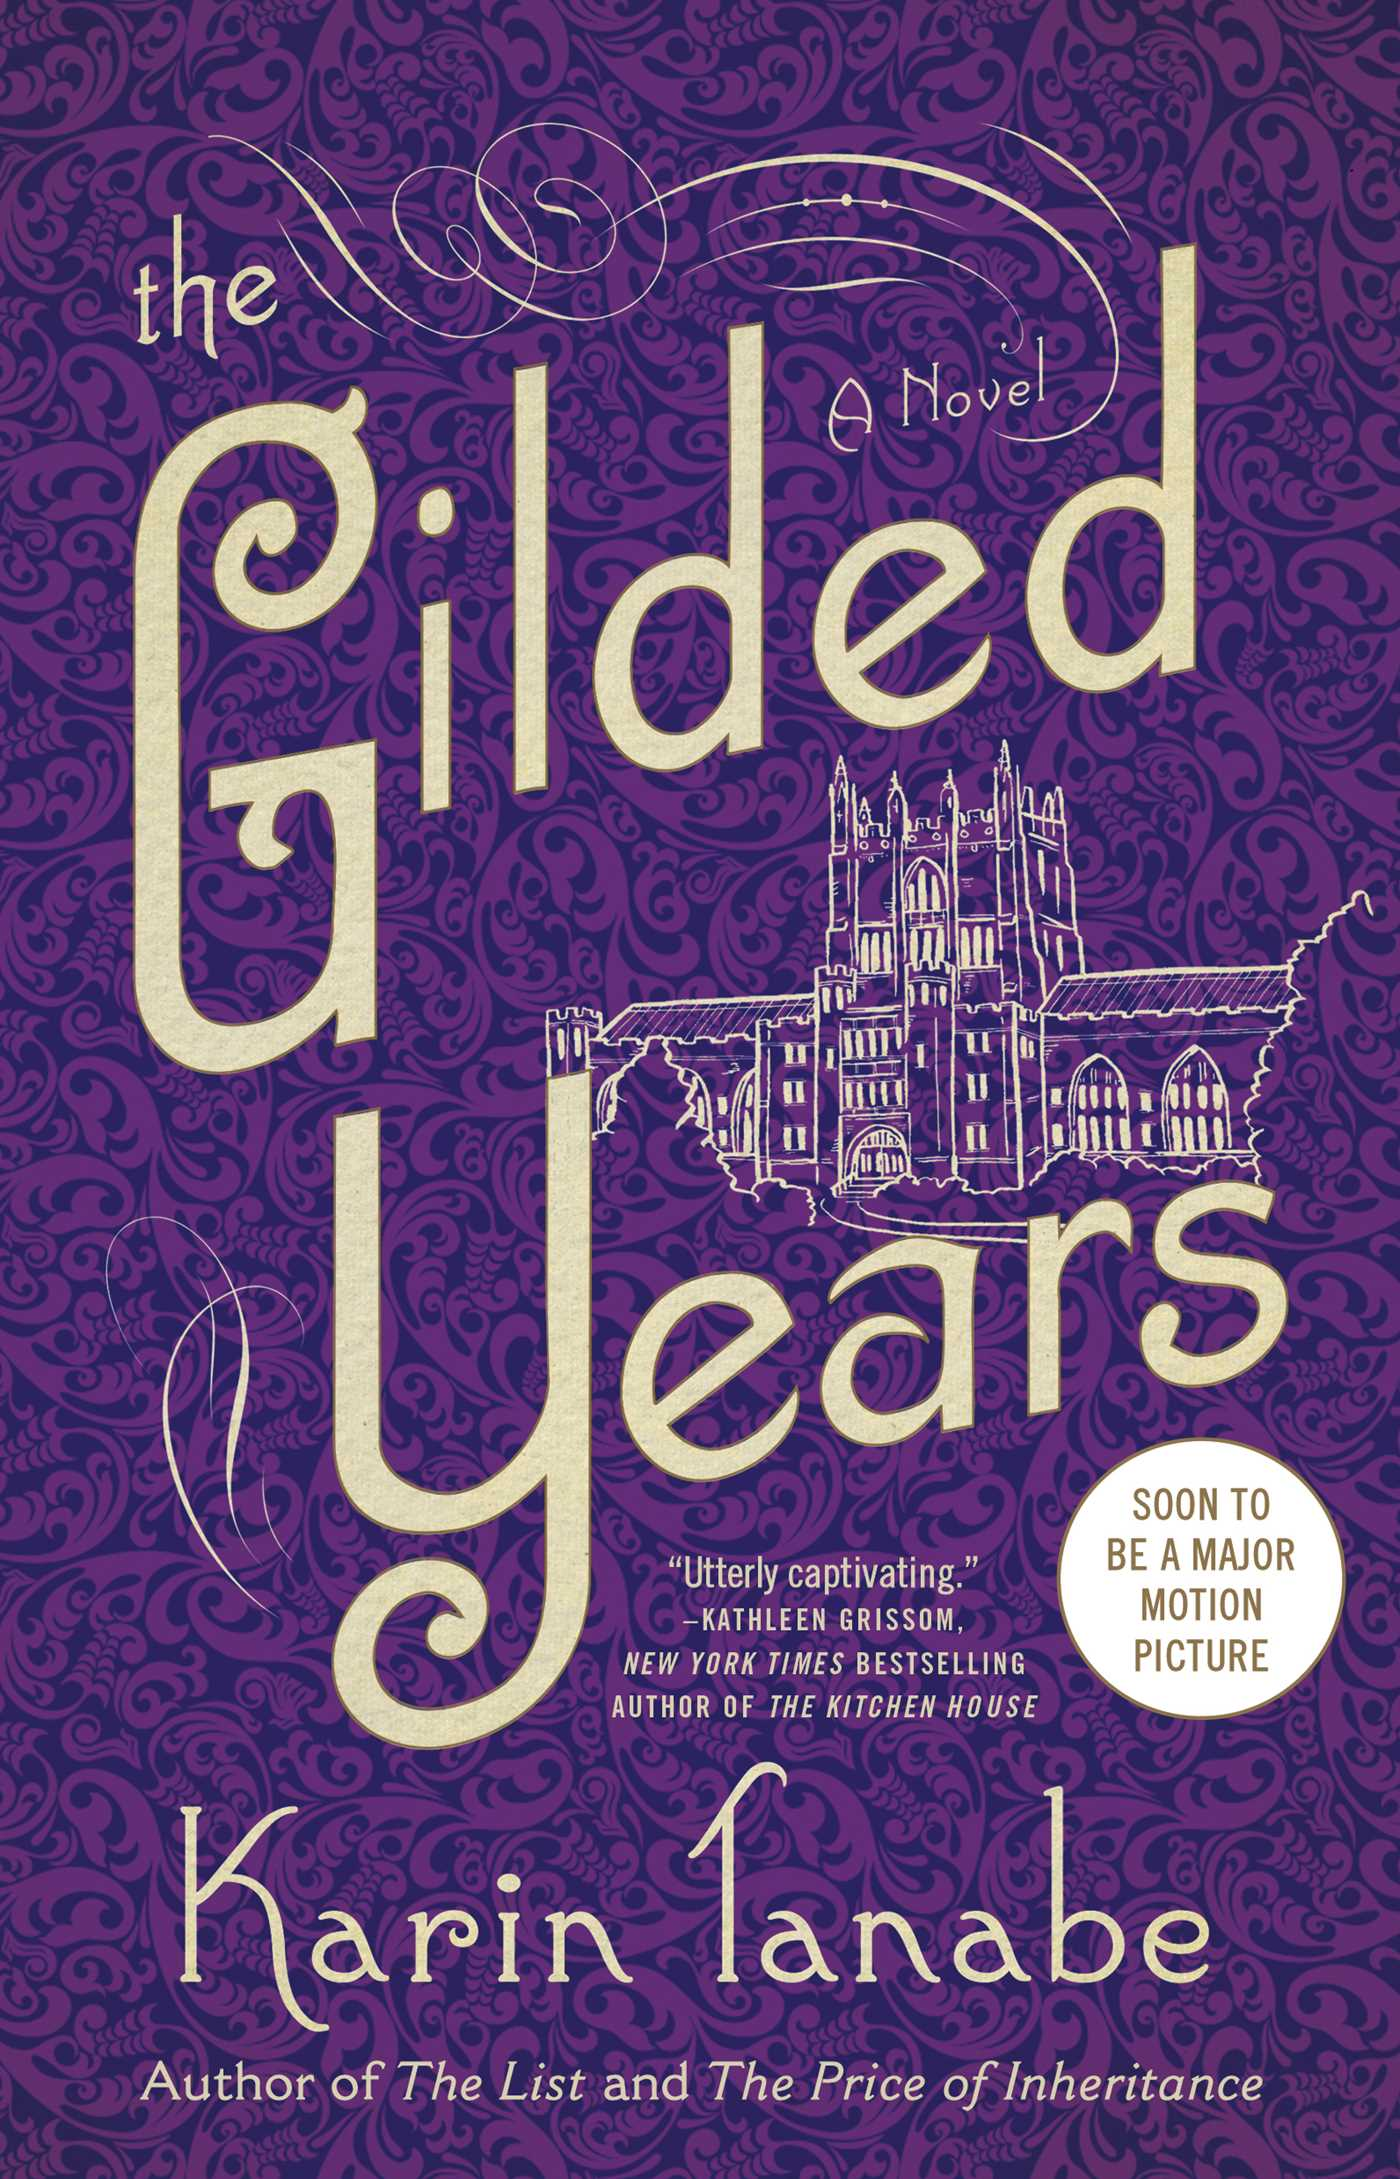 The Gilded Years | Book by Karin Tanabe | Official Publisher